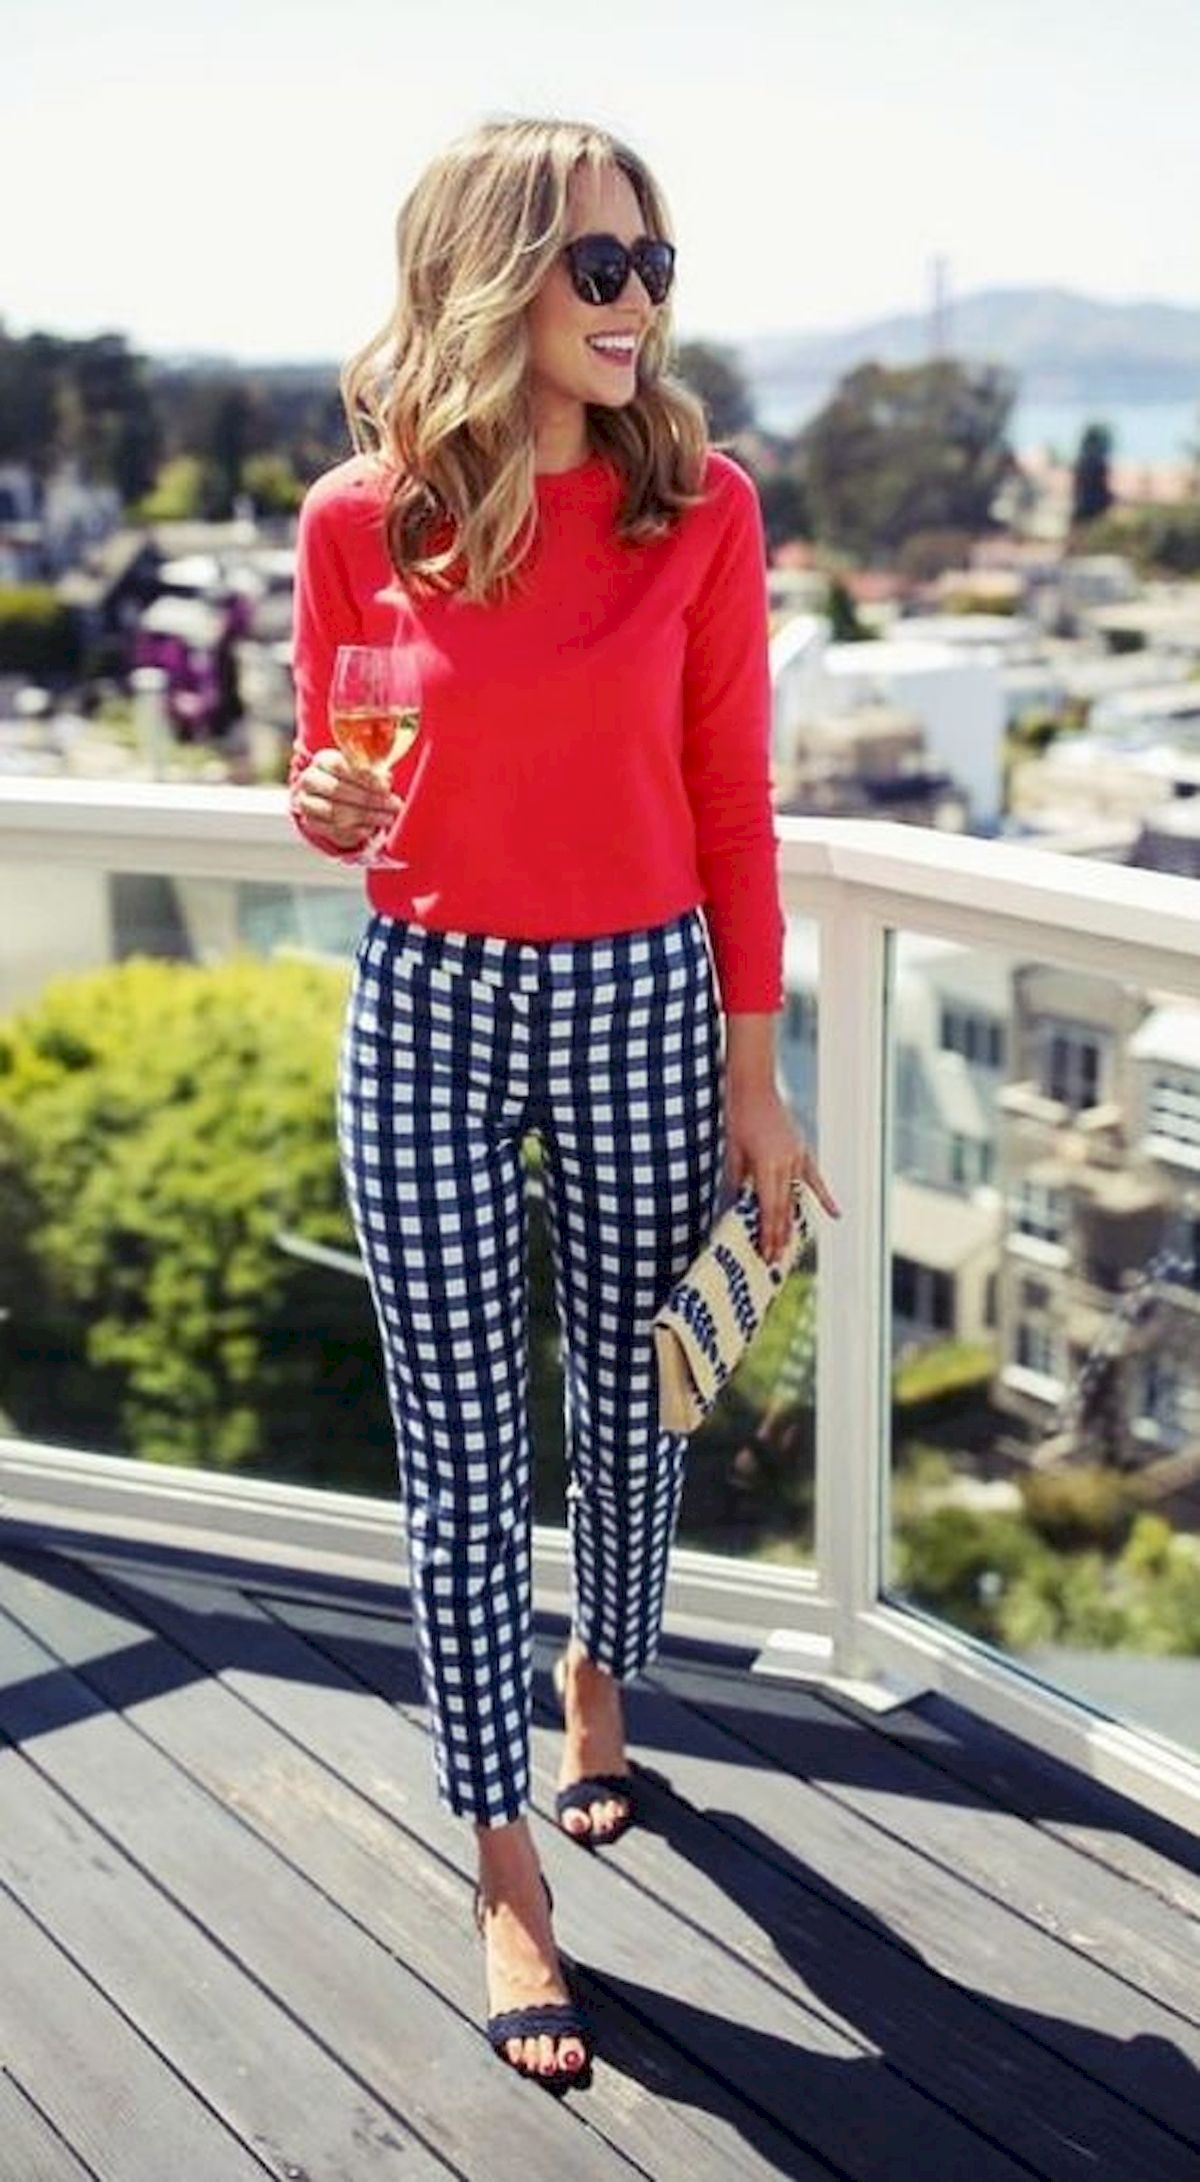 5 Stunning Spring Outfits Work Ideas for Women  Work outfits